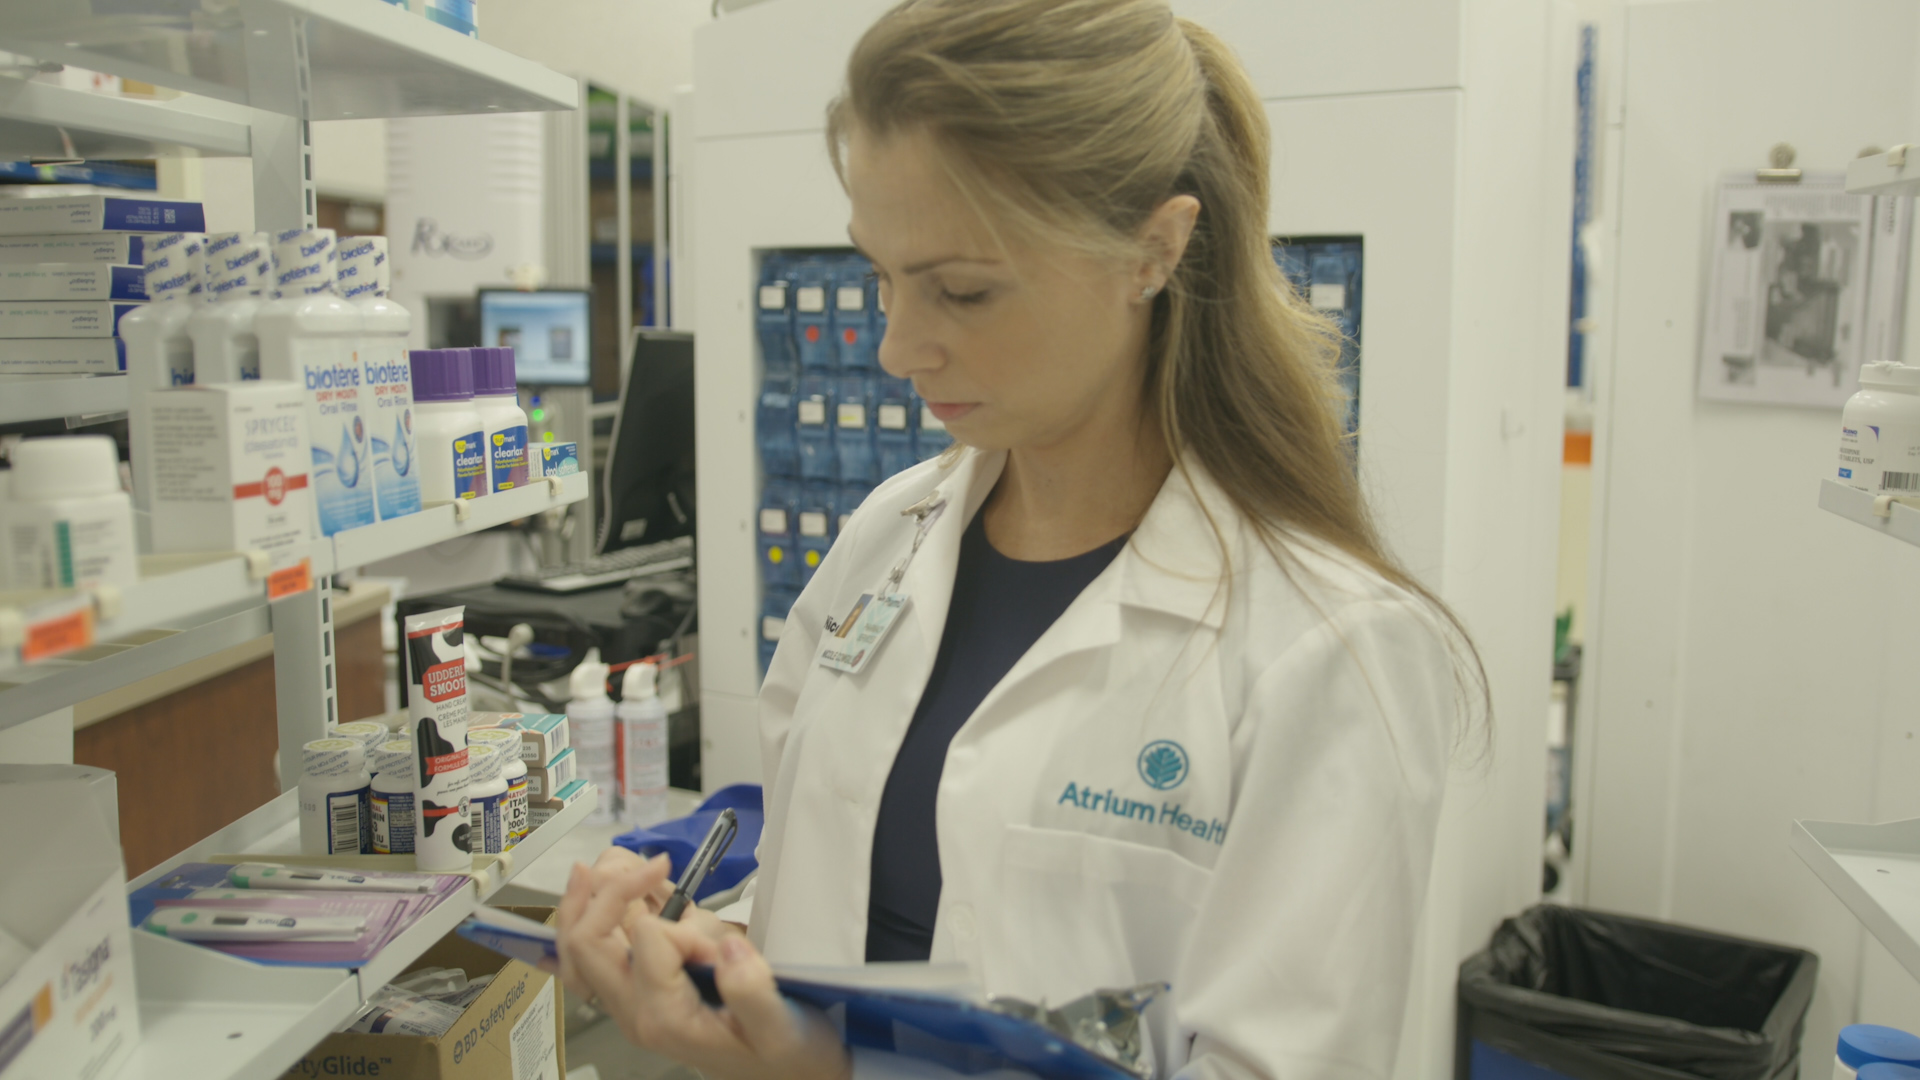 Atrium Health's Specialty Pharmacy Service gives patients more information, faster service and better outcomes.